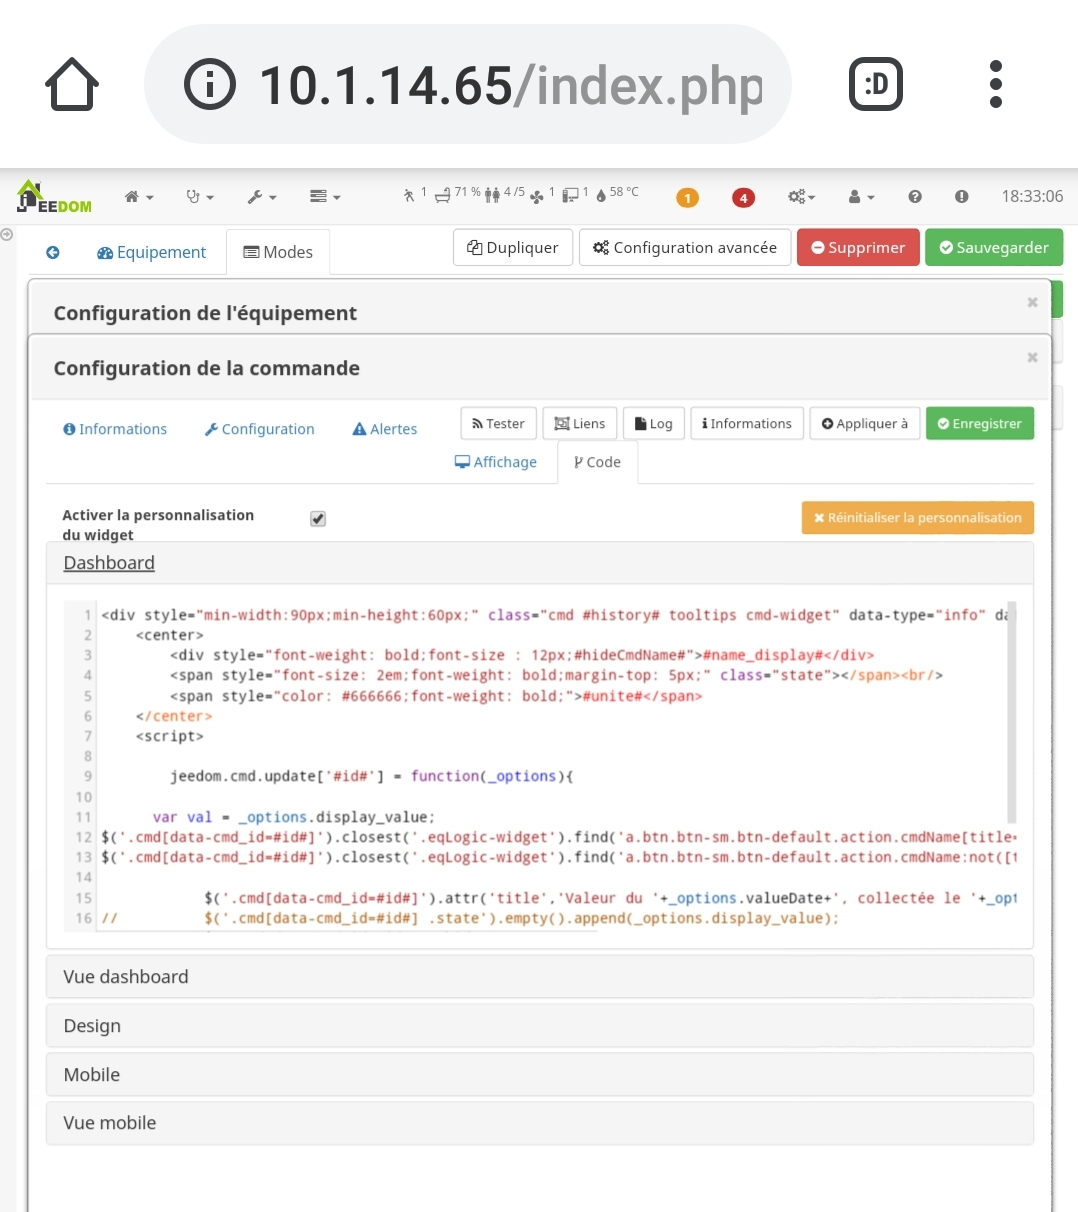 Screenshot_20190228-183308_Chrome.jpg